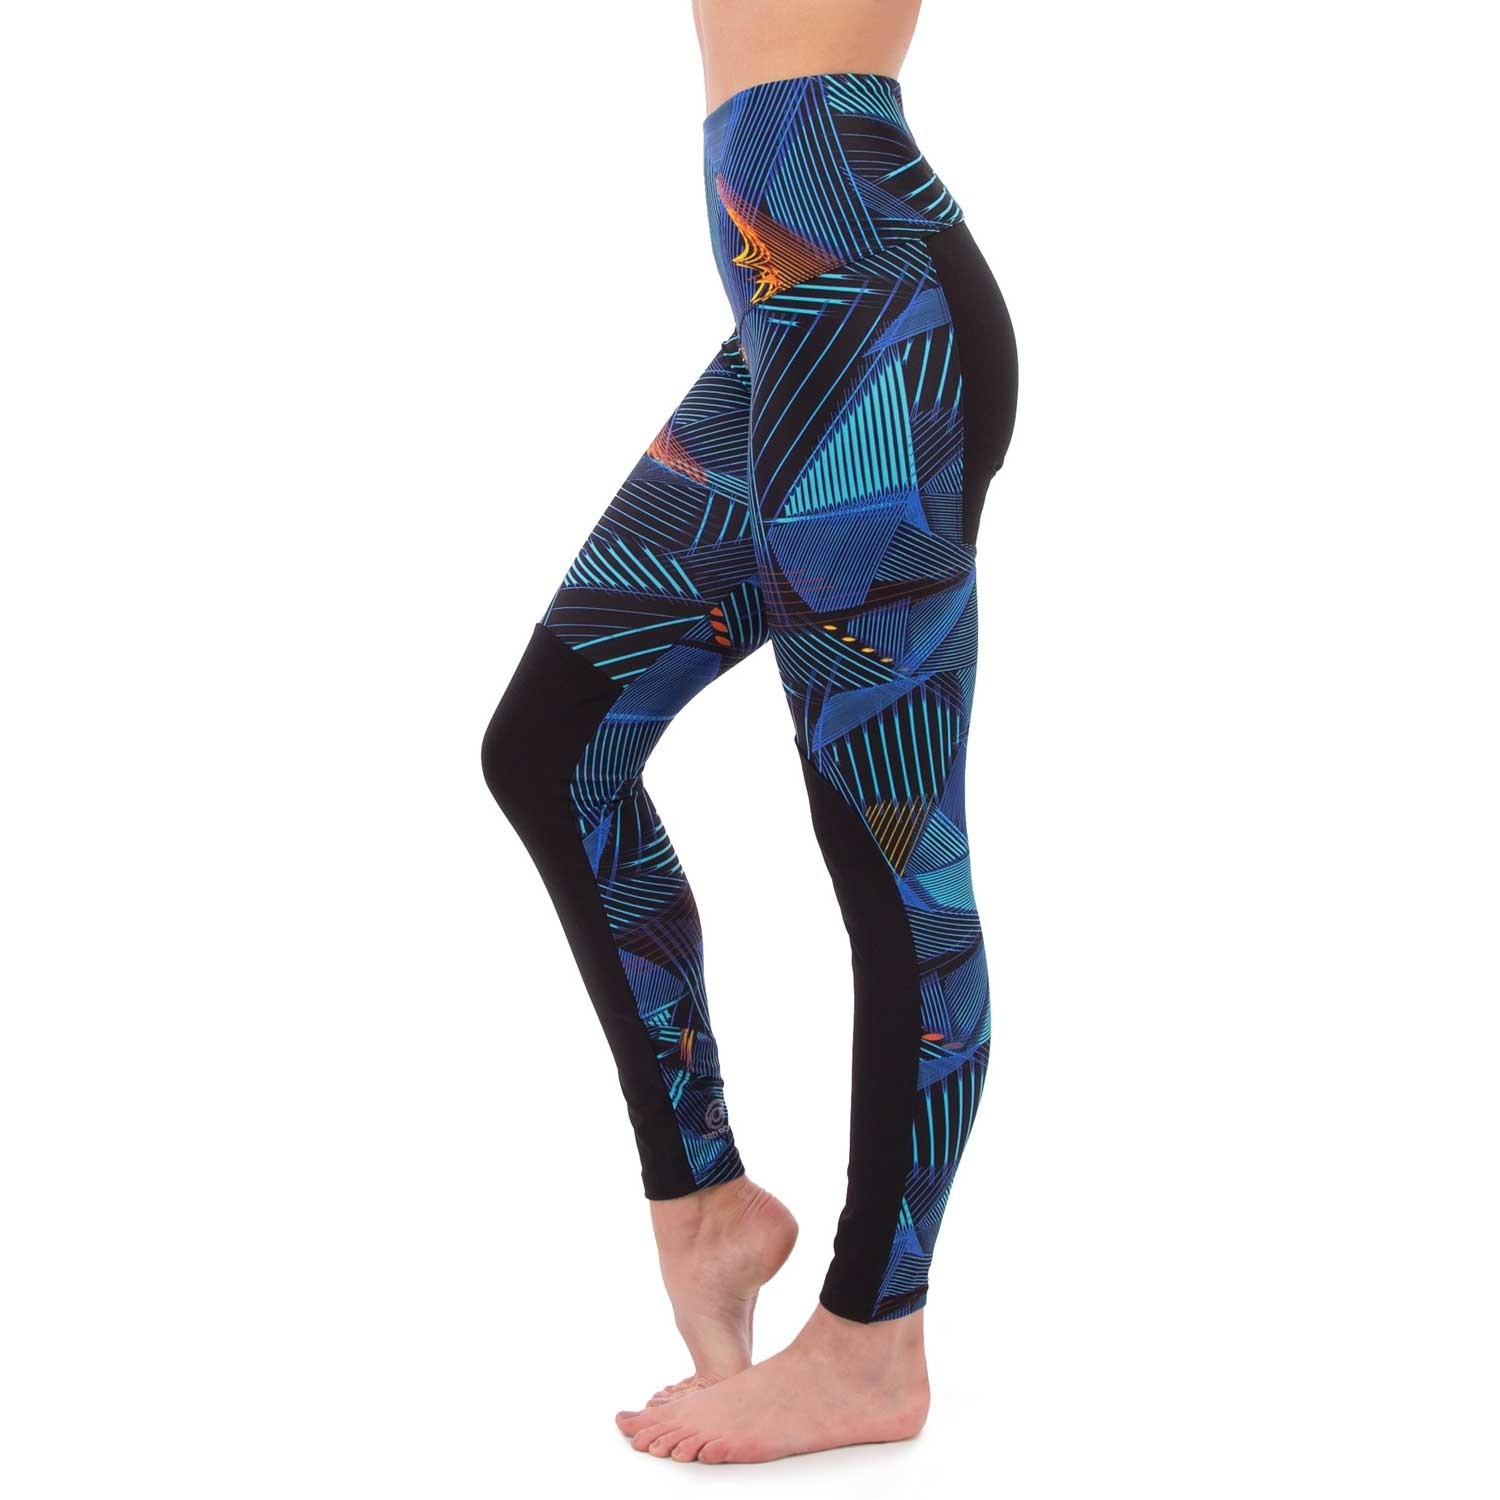 Third Rock Apache Leggings - Women's - Electric Blues Black